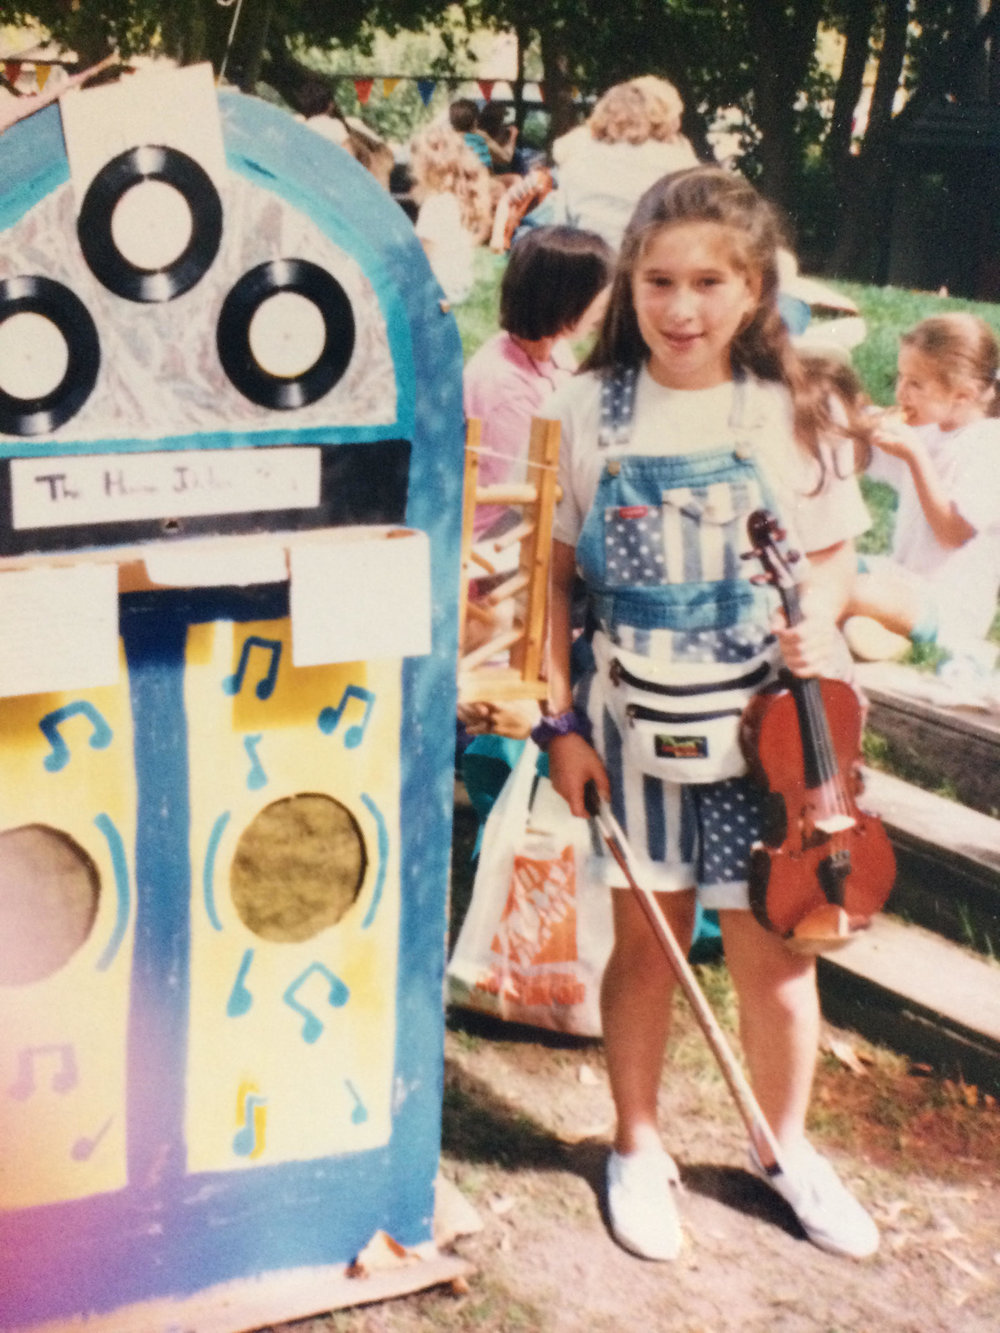 A young Toby! With my violin and my homemade human jukebox in my youth, in Palo Alto.